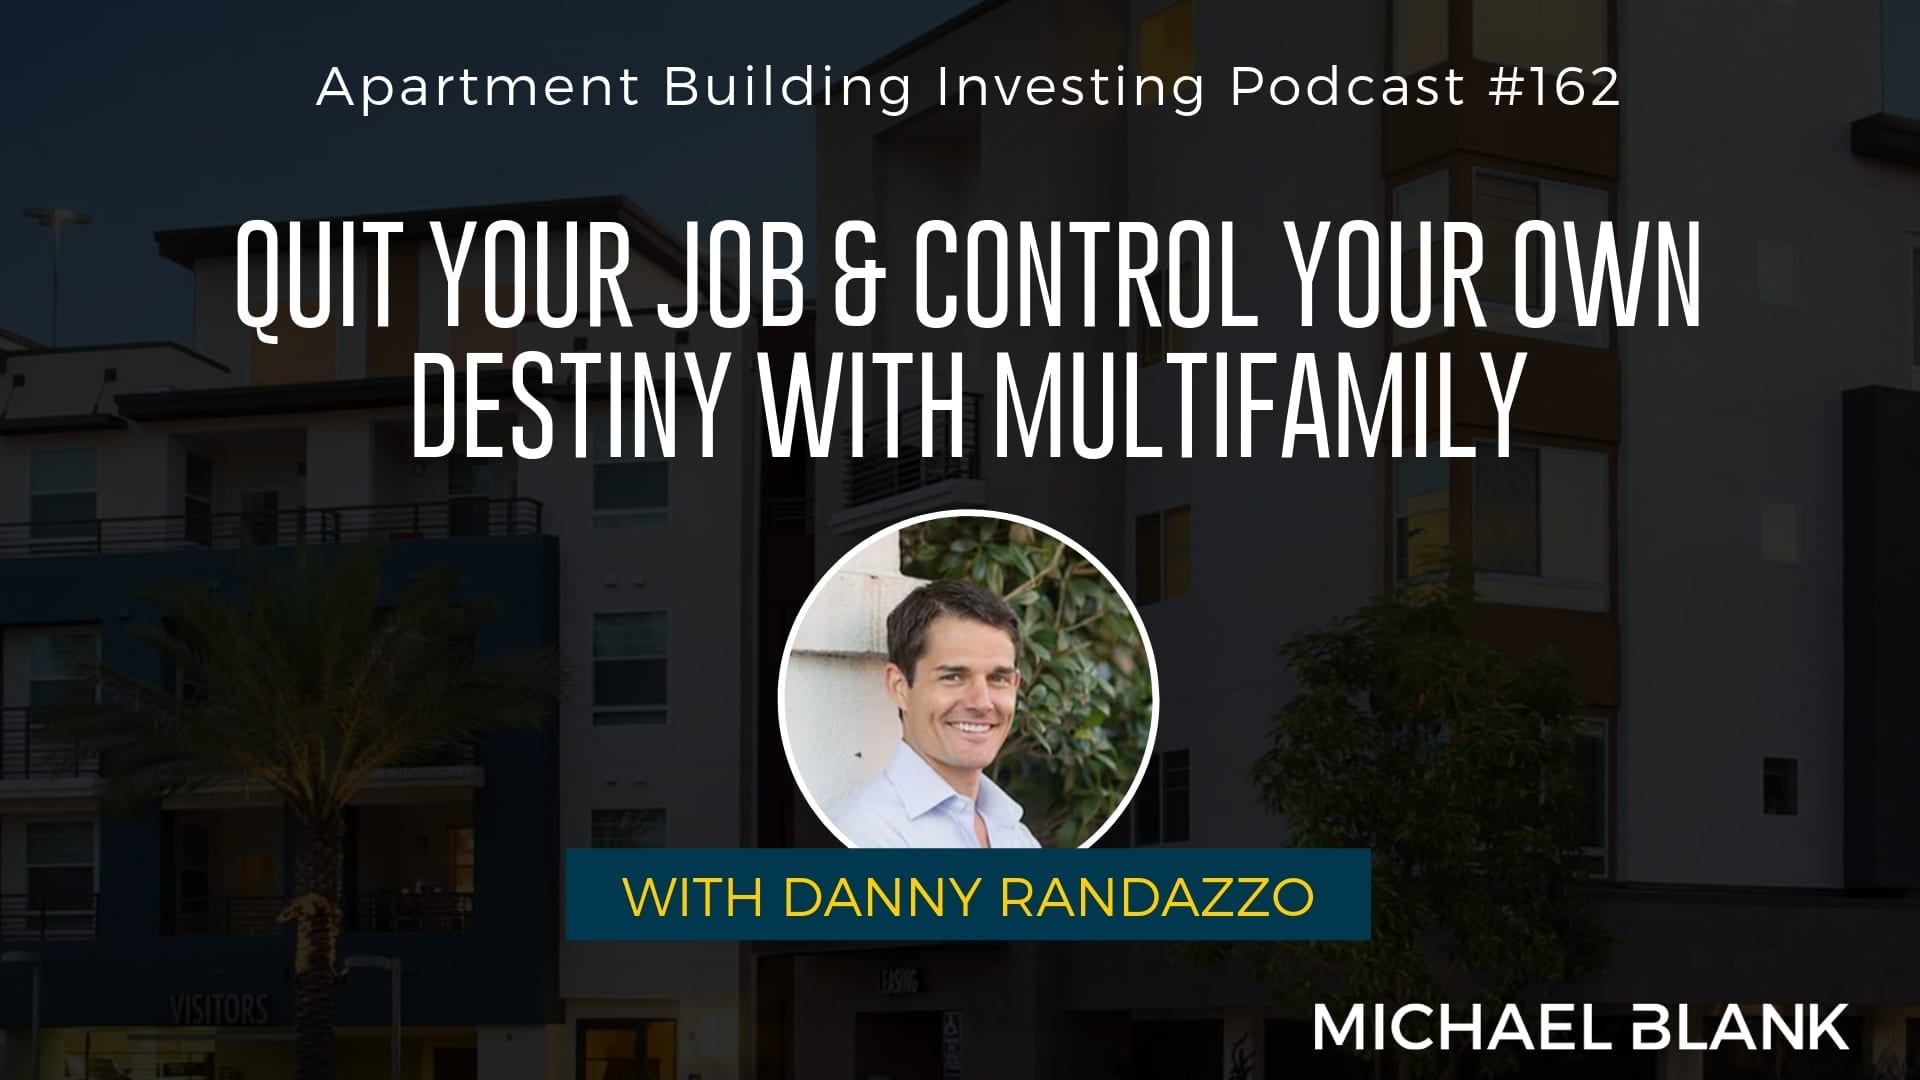 MB 162: Quit Your Job & Control Your Own Destiny with Multifamily – With Danny Randazzo